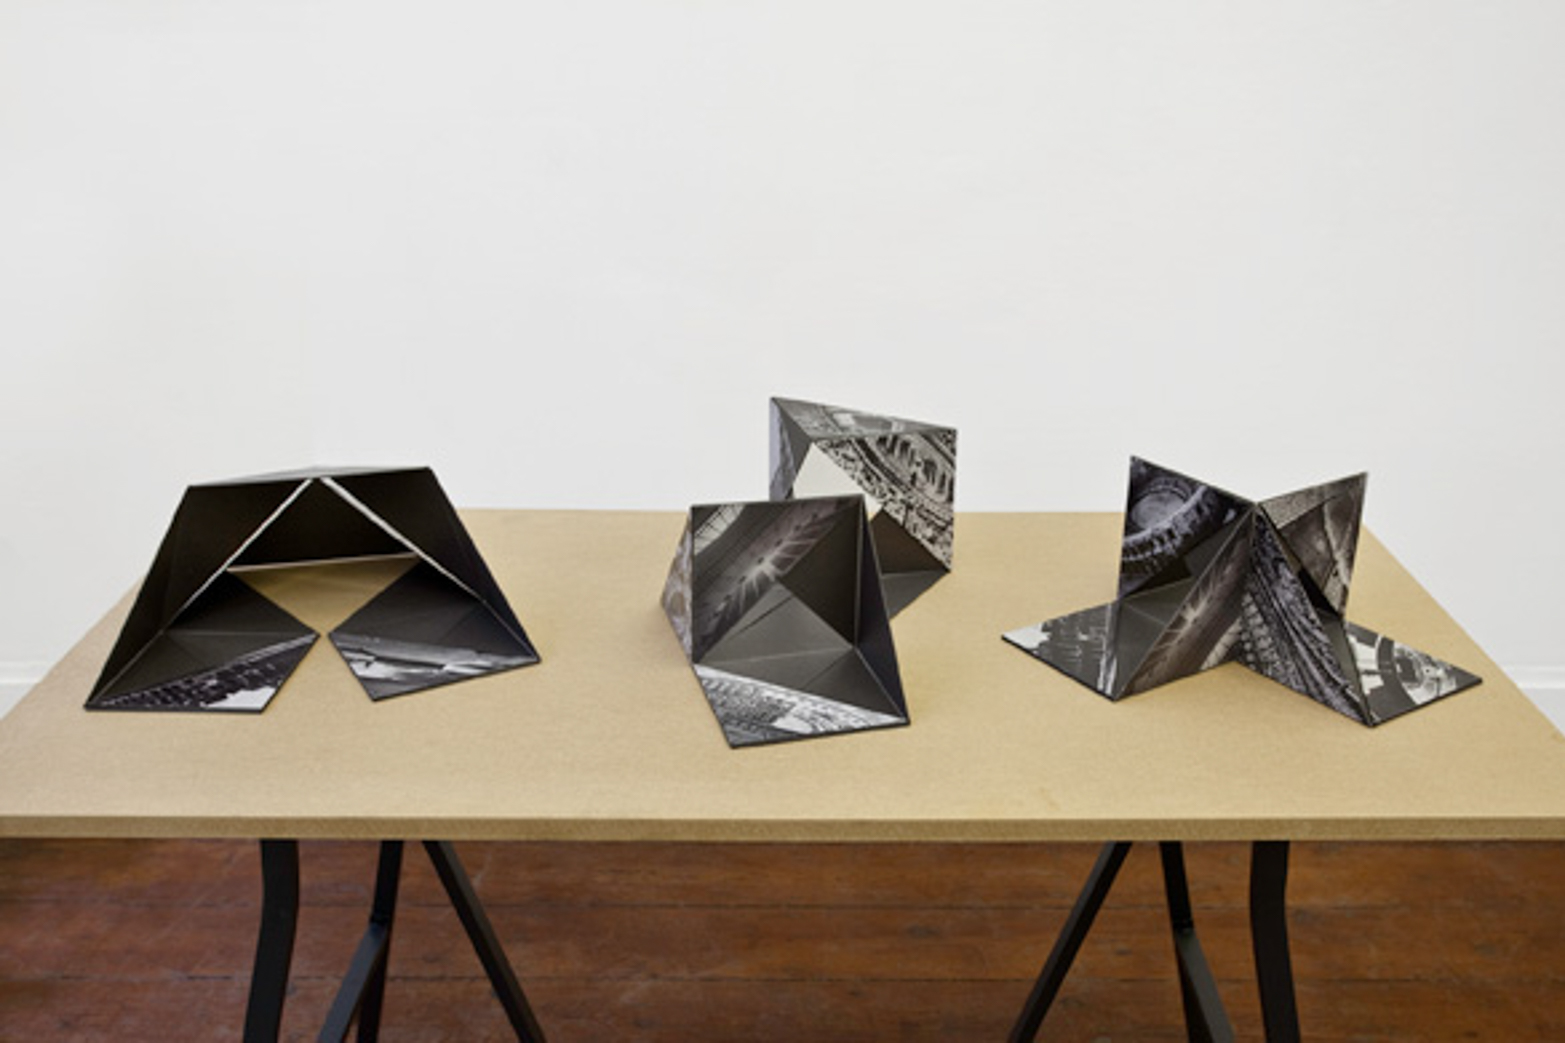 Erika Hock. Folding Objects, 2012